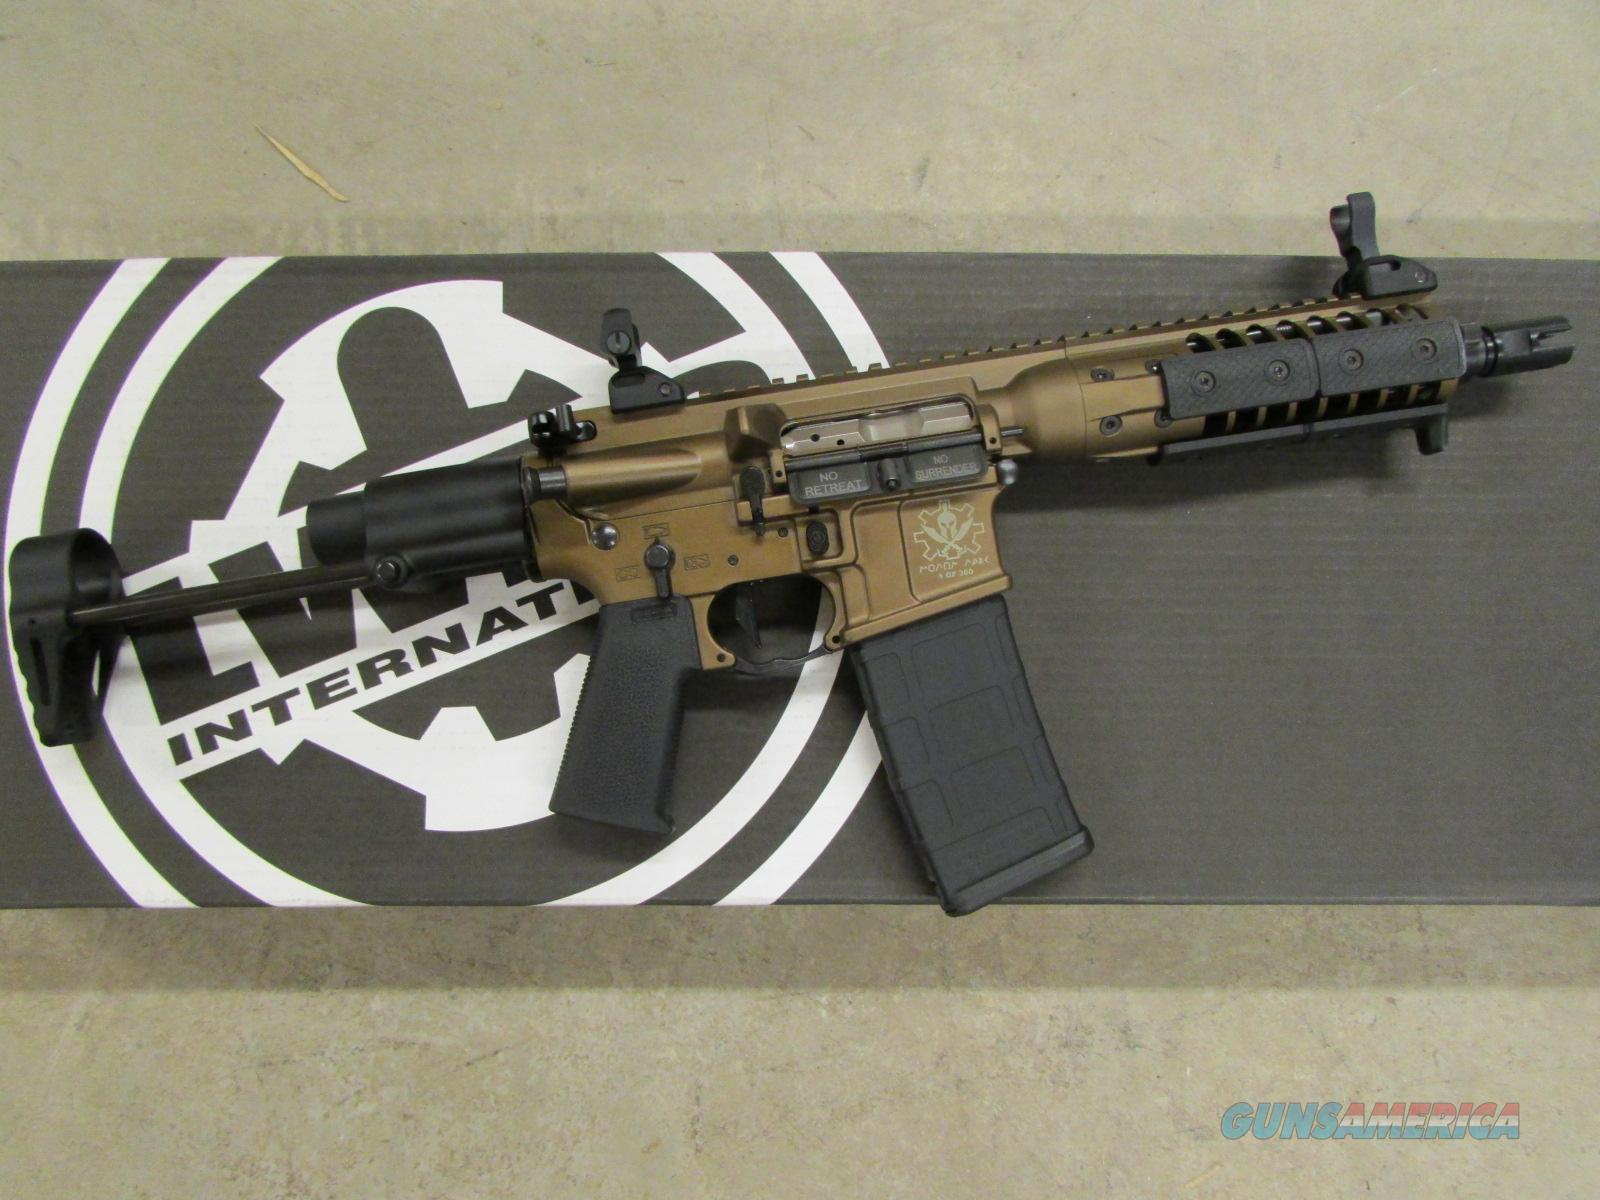 "LWRC Spartan XIPHOS Burnt Bronze AR-15/M4 SBR 8"" 5.56 NATO  Guns > Rifles > AR-15 Rifles - Small Manufacturers > Complete Rifle"